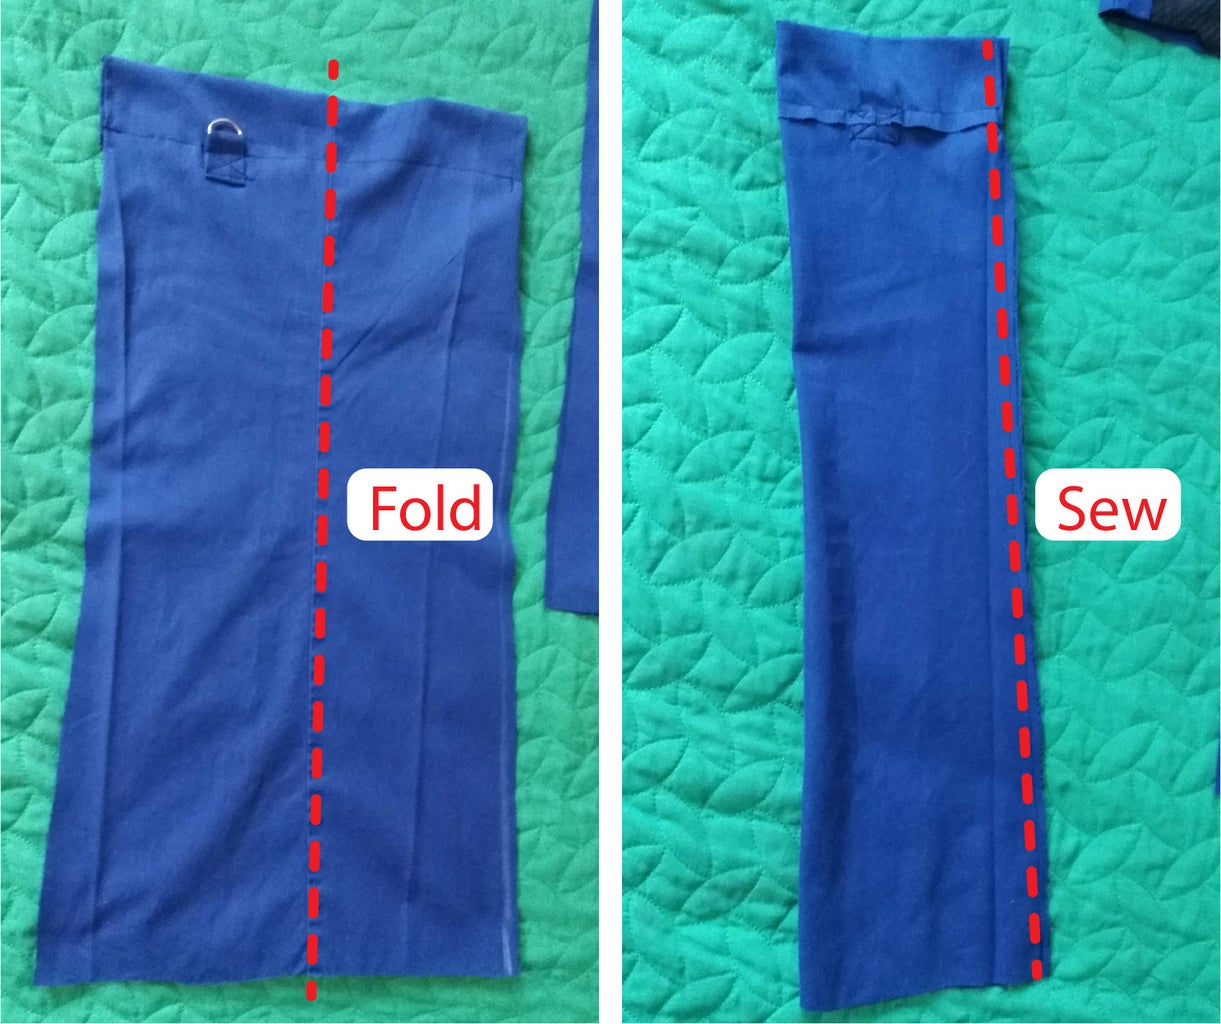 Sewing One Side